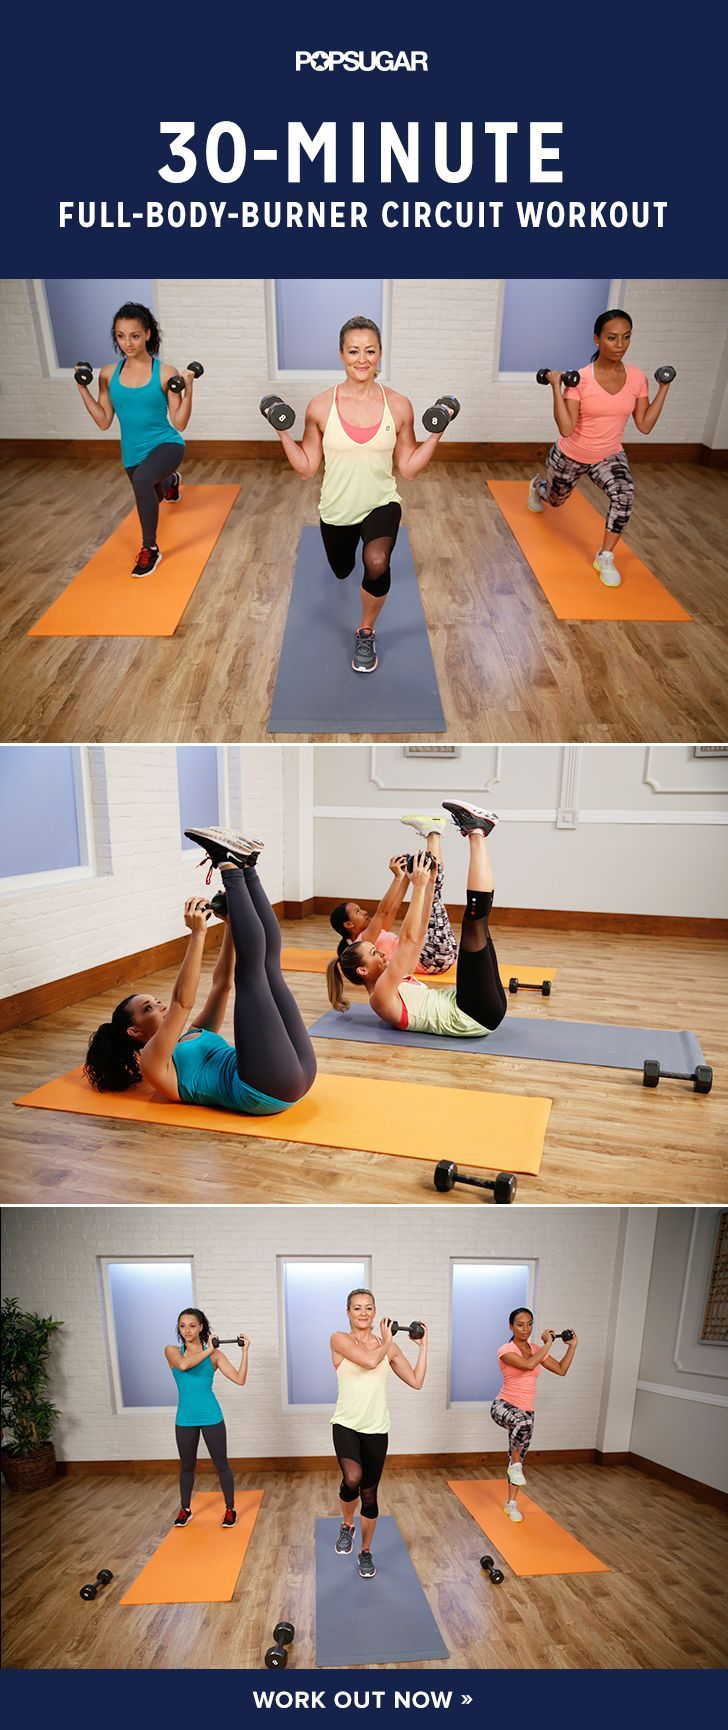 You will keep moving throughout the 30 minutes using medium weights to burn serious calories while building metabolism-boosting muscles.